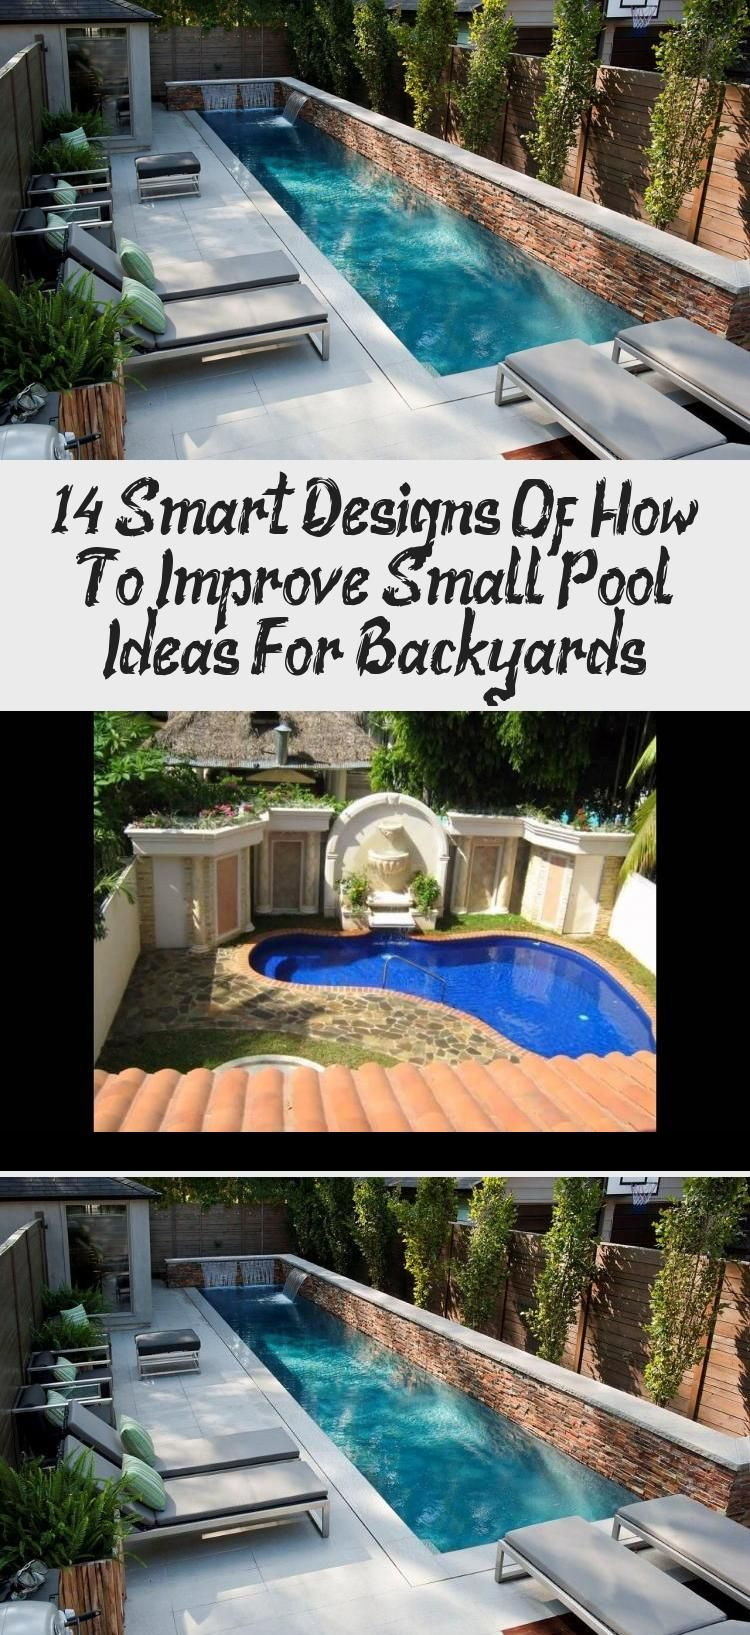 14 Smart Designs Of How To Improve Small Pool Ideas For Backyards Decor Small Pools Pool Landscaping Pool